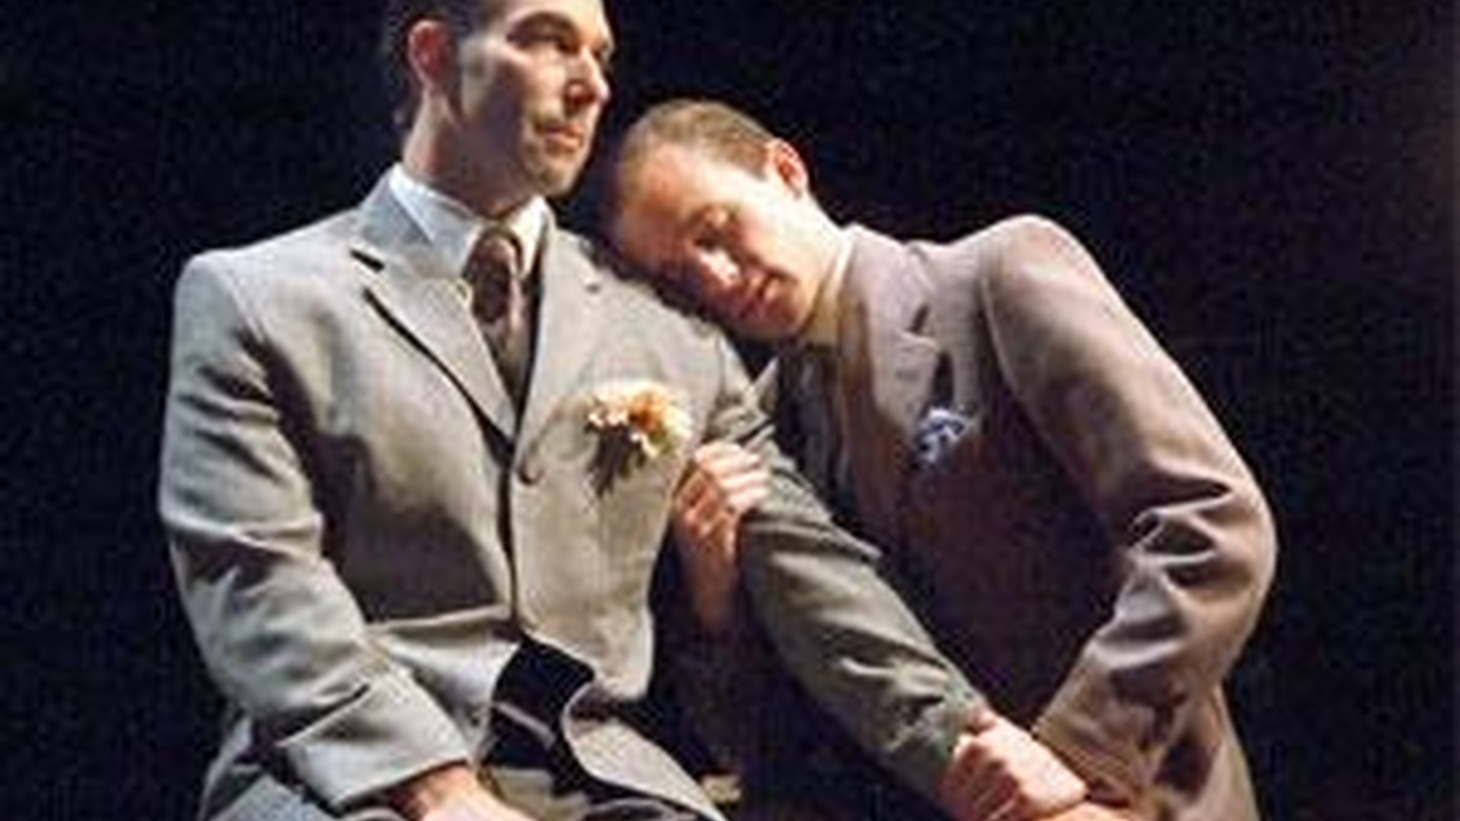 """In 1914, Long Beach Police Department hired two actors named Warren and Brown as """"vice specialists.""""  Their job was to go into private clubs and public changing rooms and arrest gay men in the act of being . . . gay.  That appalling and tantalizing little historical detail is the kernel of Tom Jacobson's new play – """"The Twentieth Century Way.""""  It's  currently premiering at the Boston Court Theater in Pasadena."""